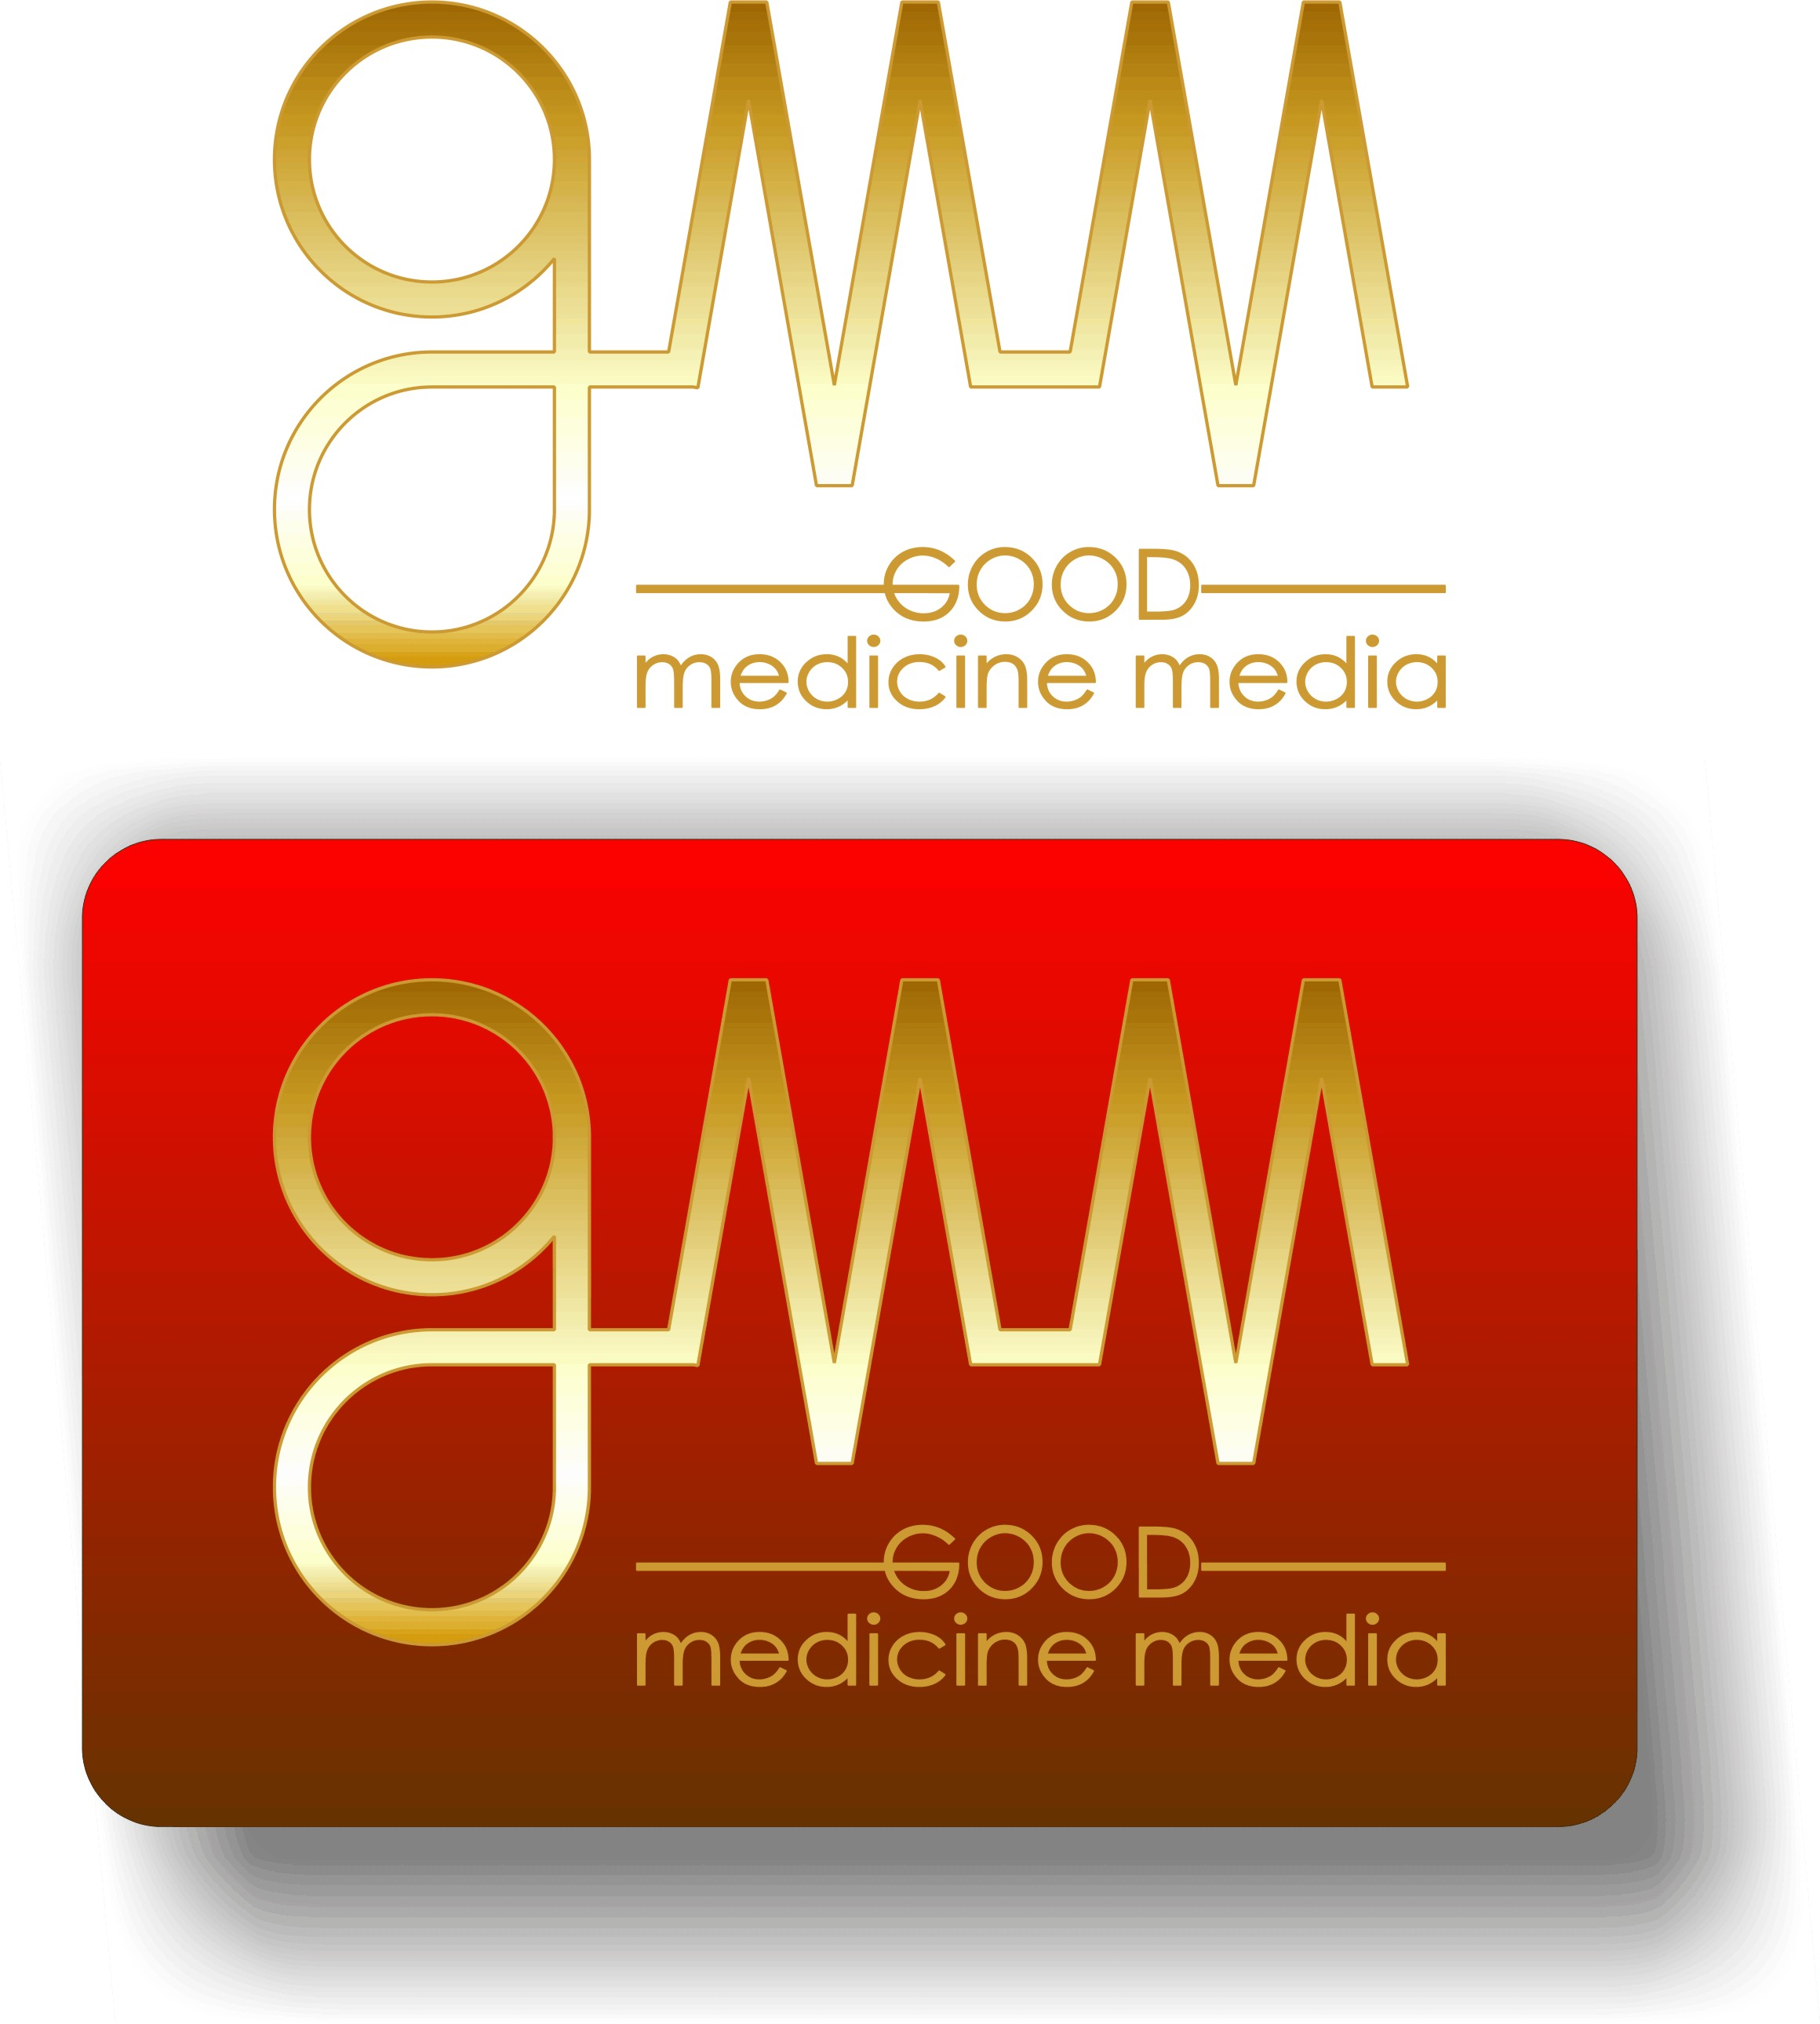 Logo Design by Korsunov Oleg - Entry No. 20 in the Logo Design Contest Good Medicine Media Logo Design.